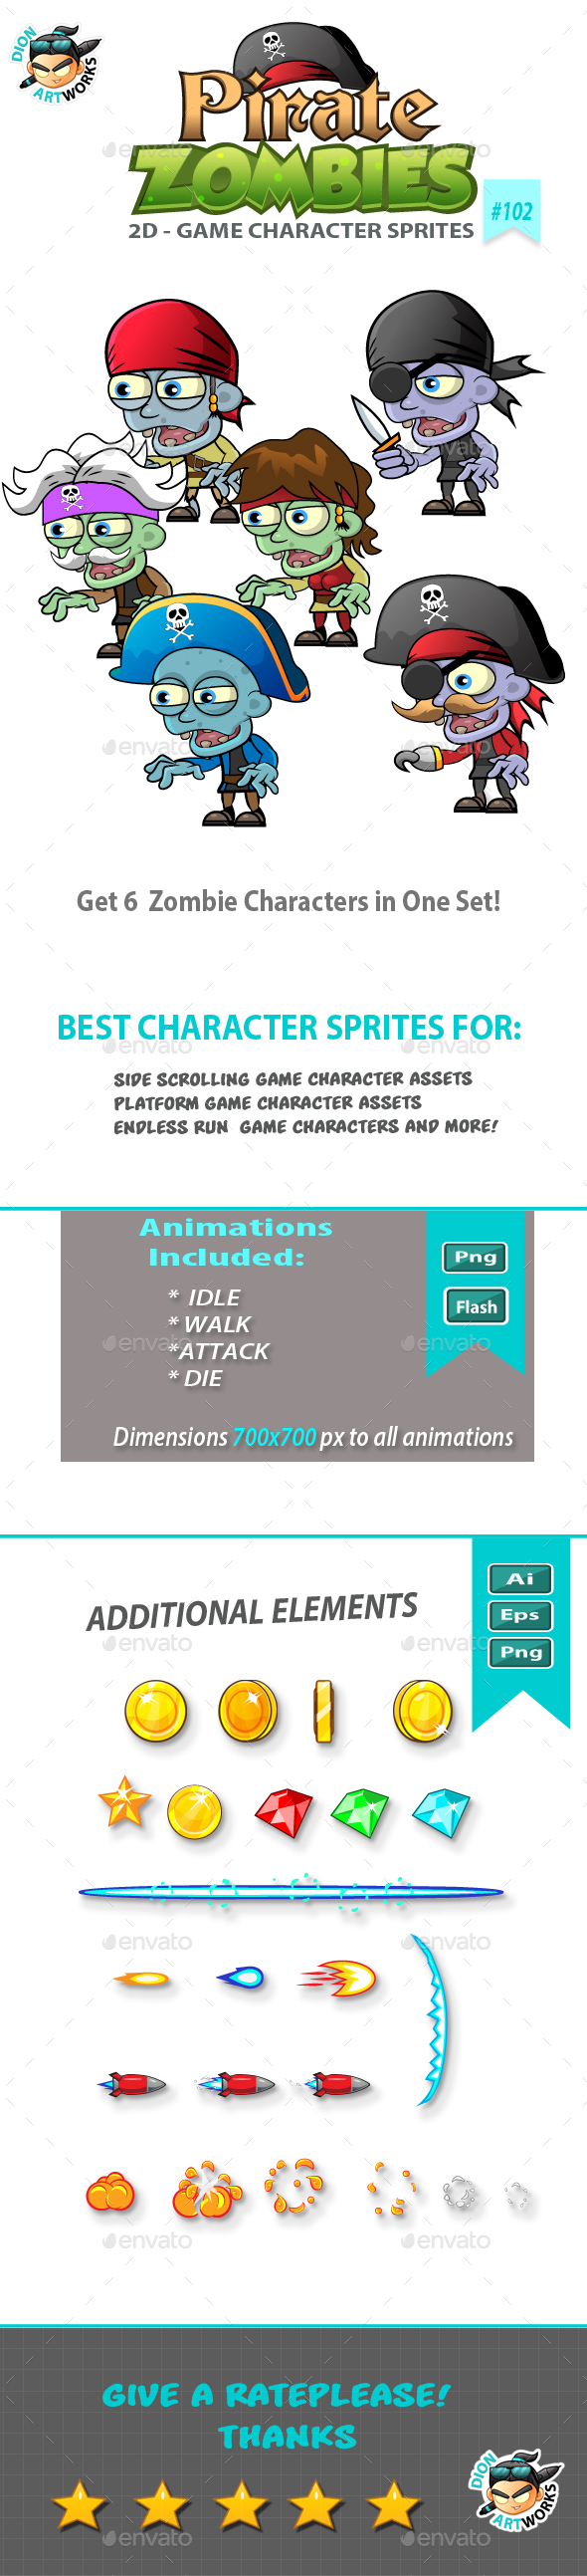 6 Pirate Zombies 2D Game Character Sprites